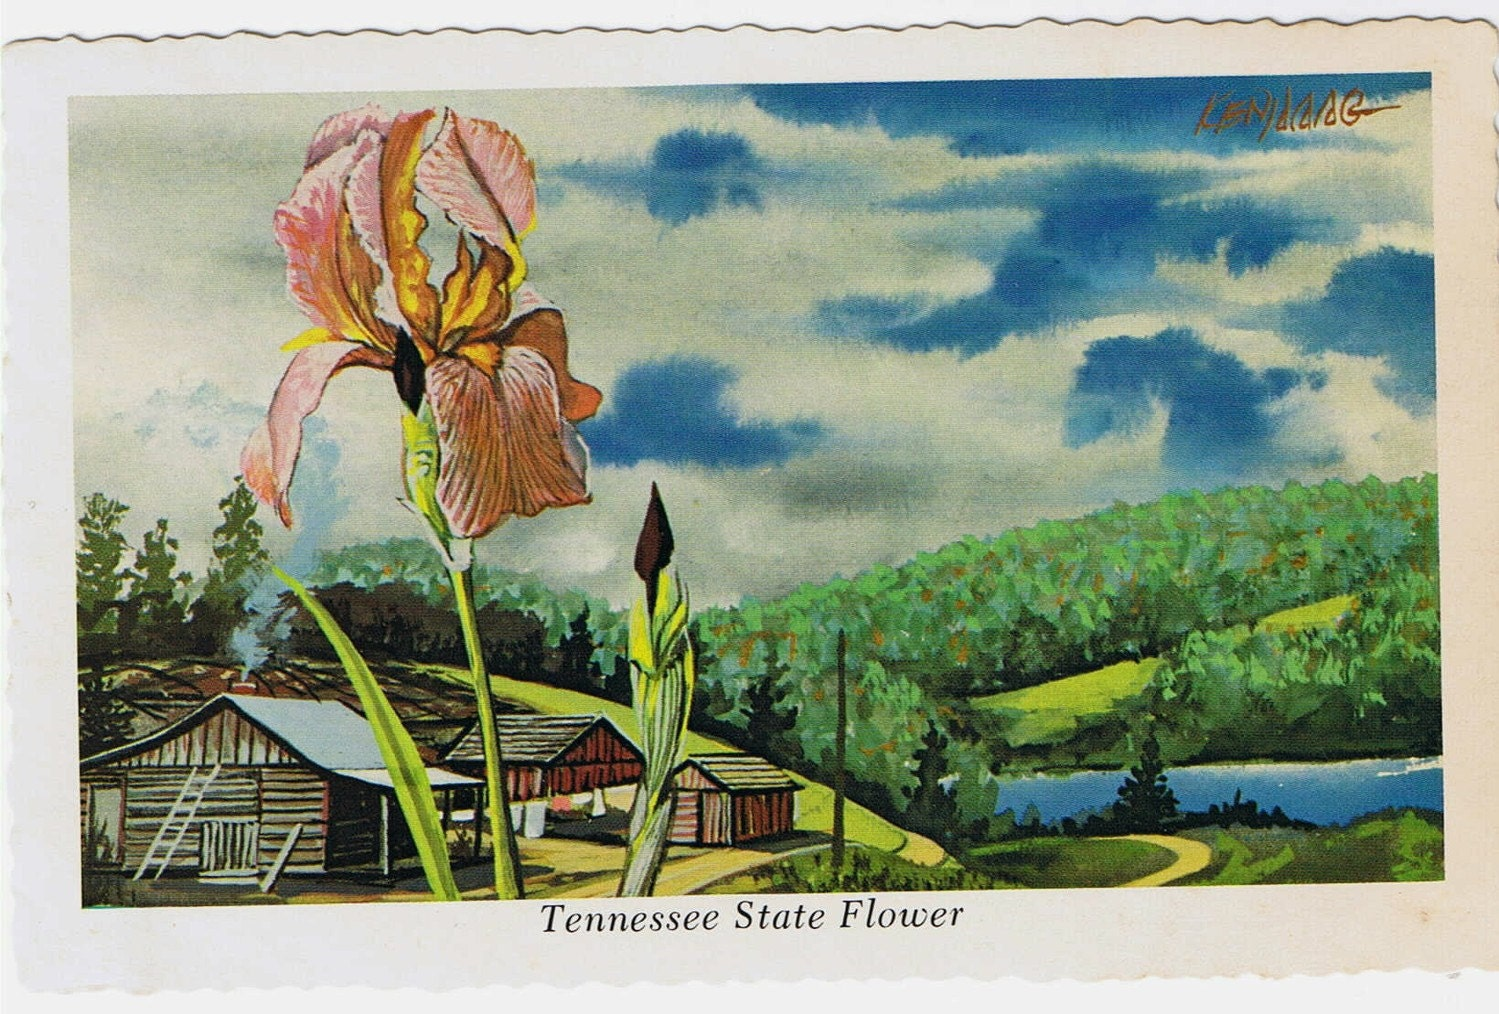 Vintage Postcard Tennessee State Flower Ken Haag State